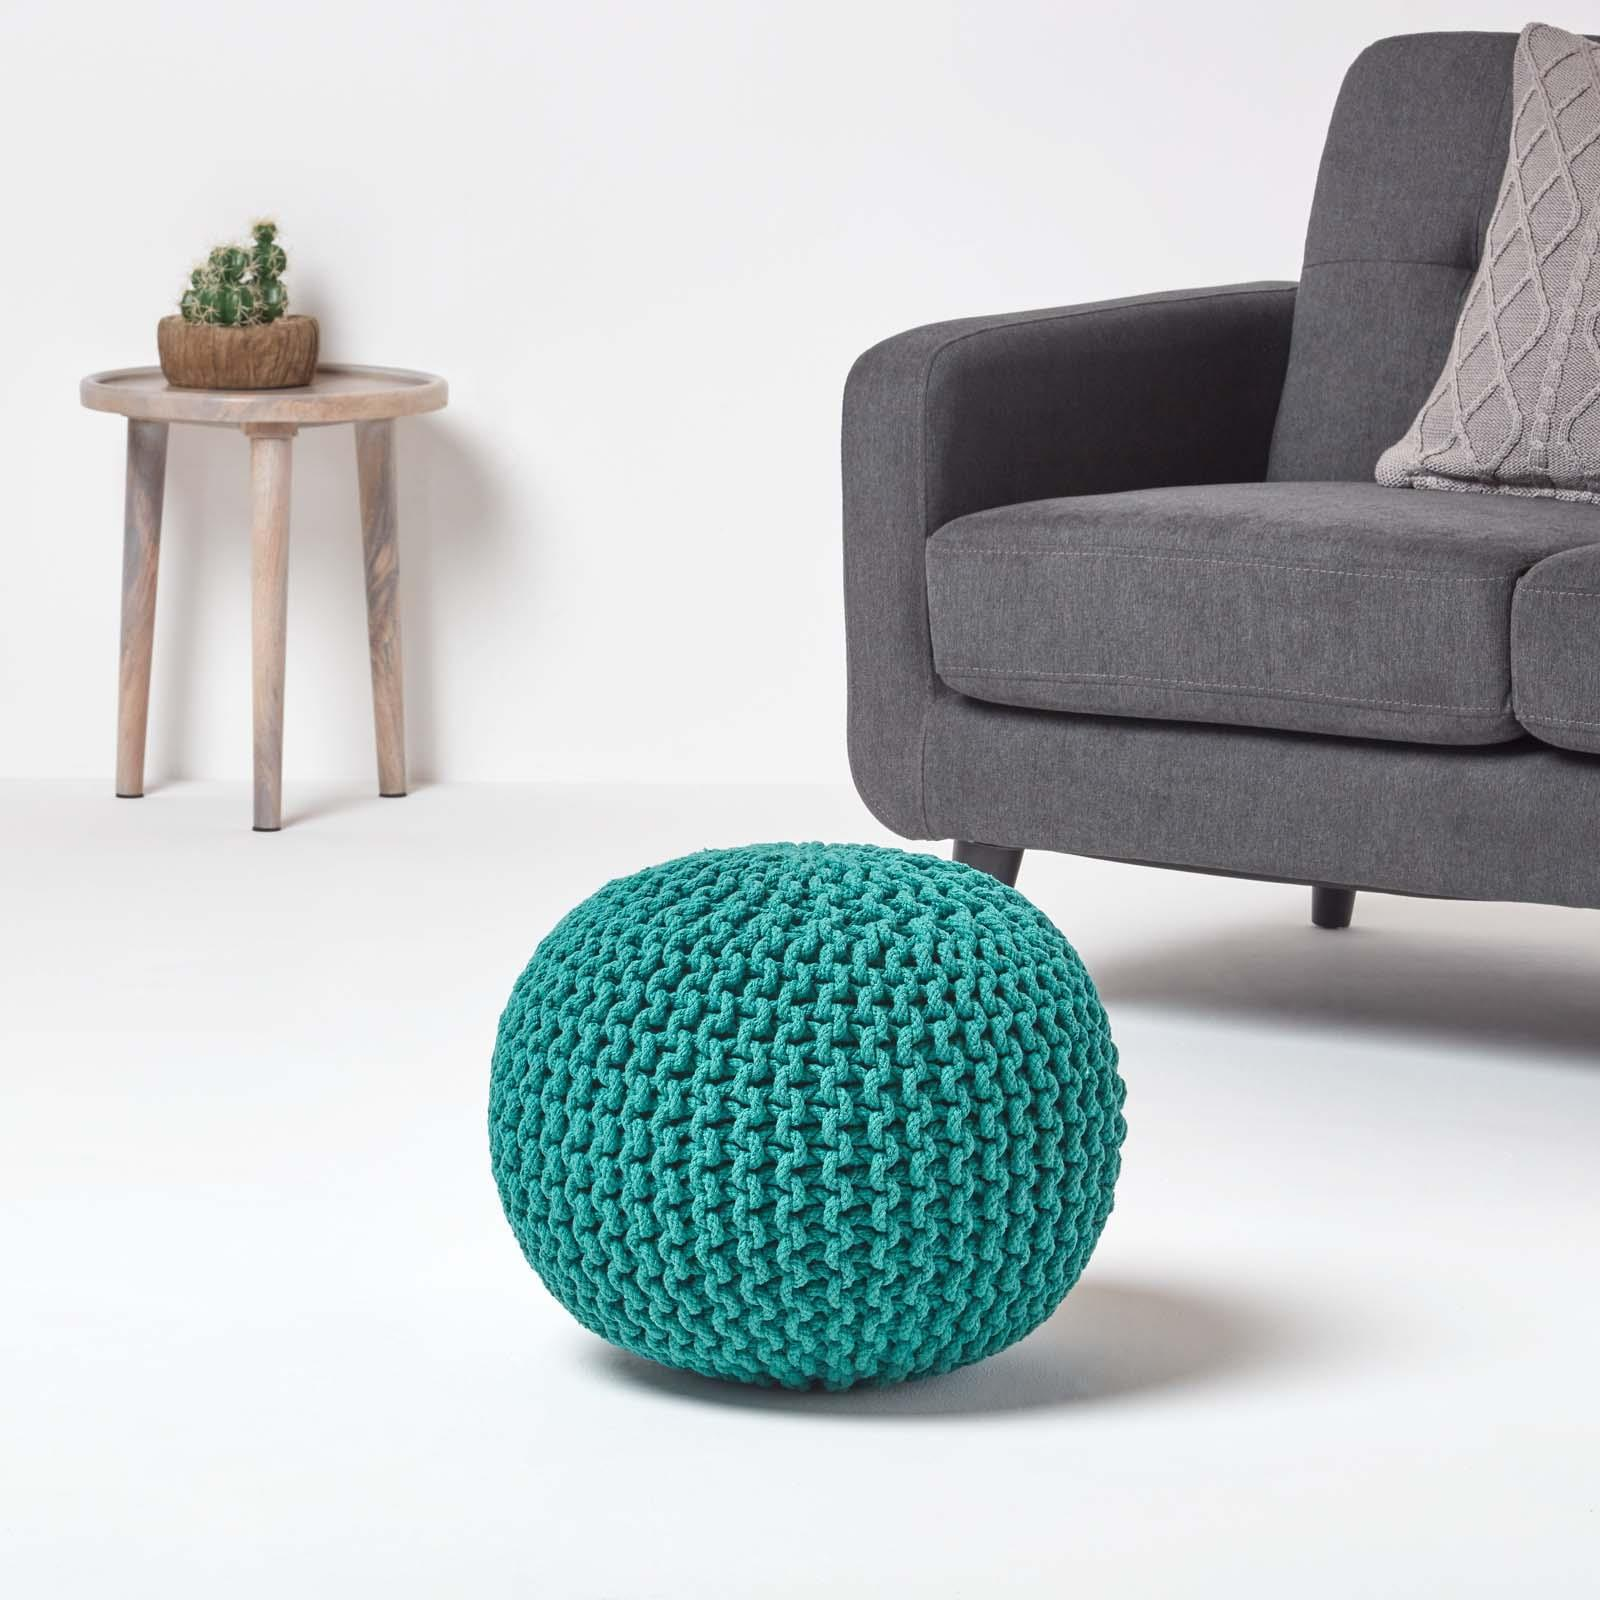 Hand-Knitted-100-Cotton-Pouffes-Round-Sphere-Or-Cube-Square-Chunky-Footstools thumbnail 194